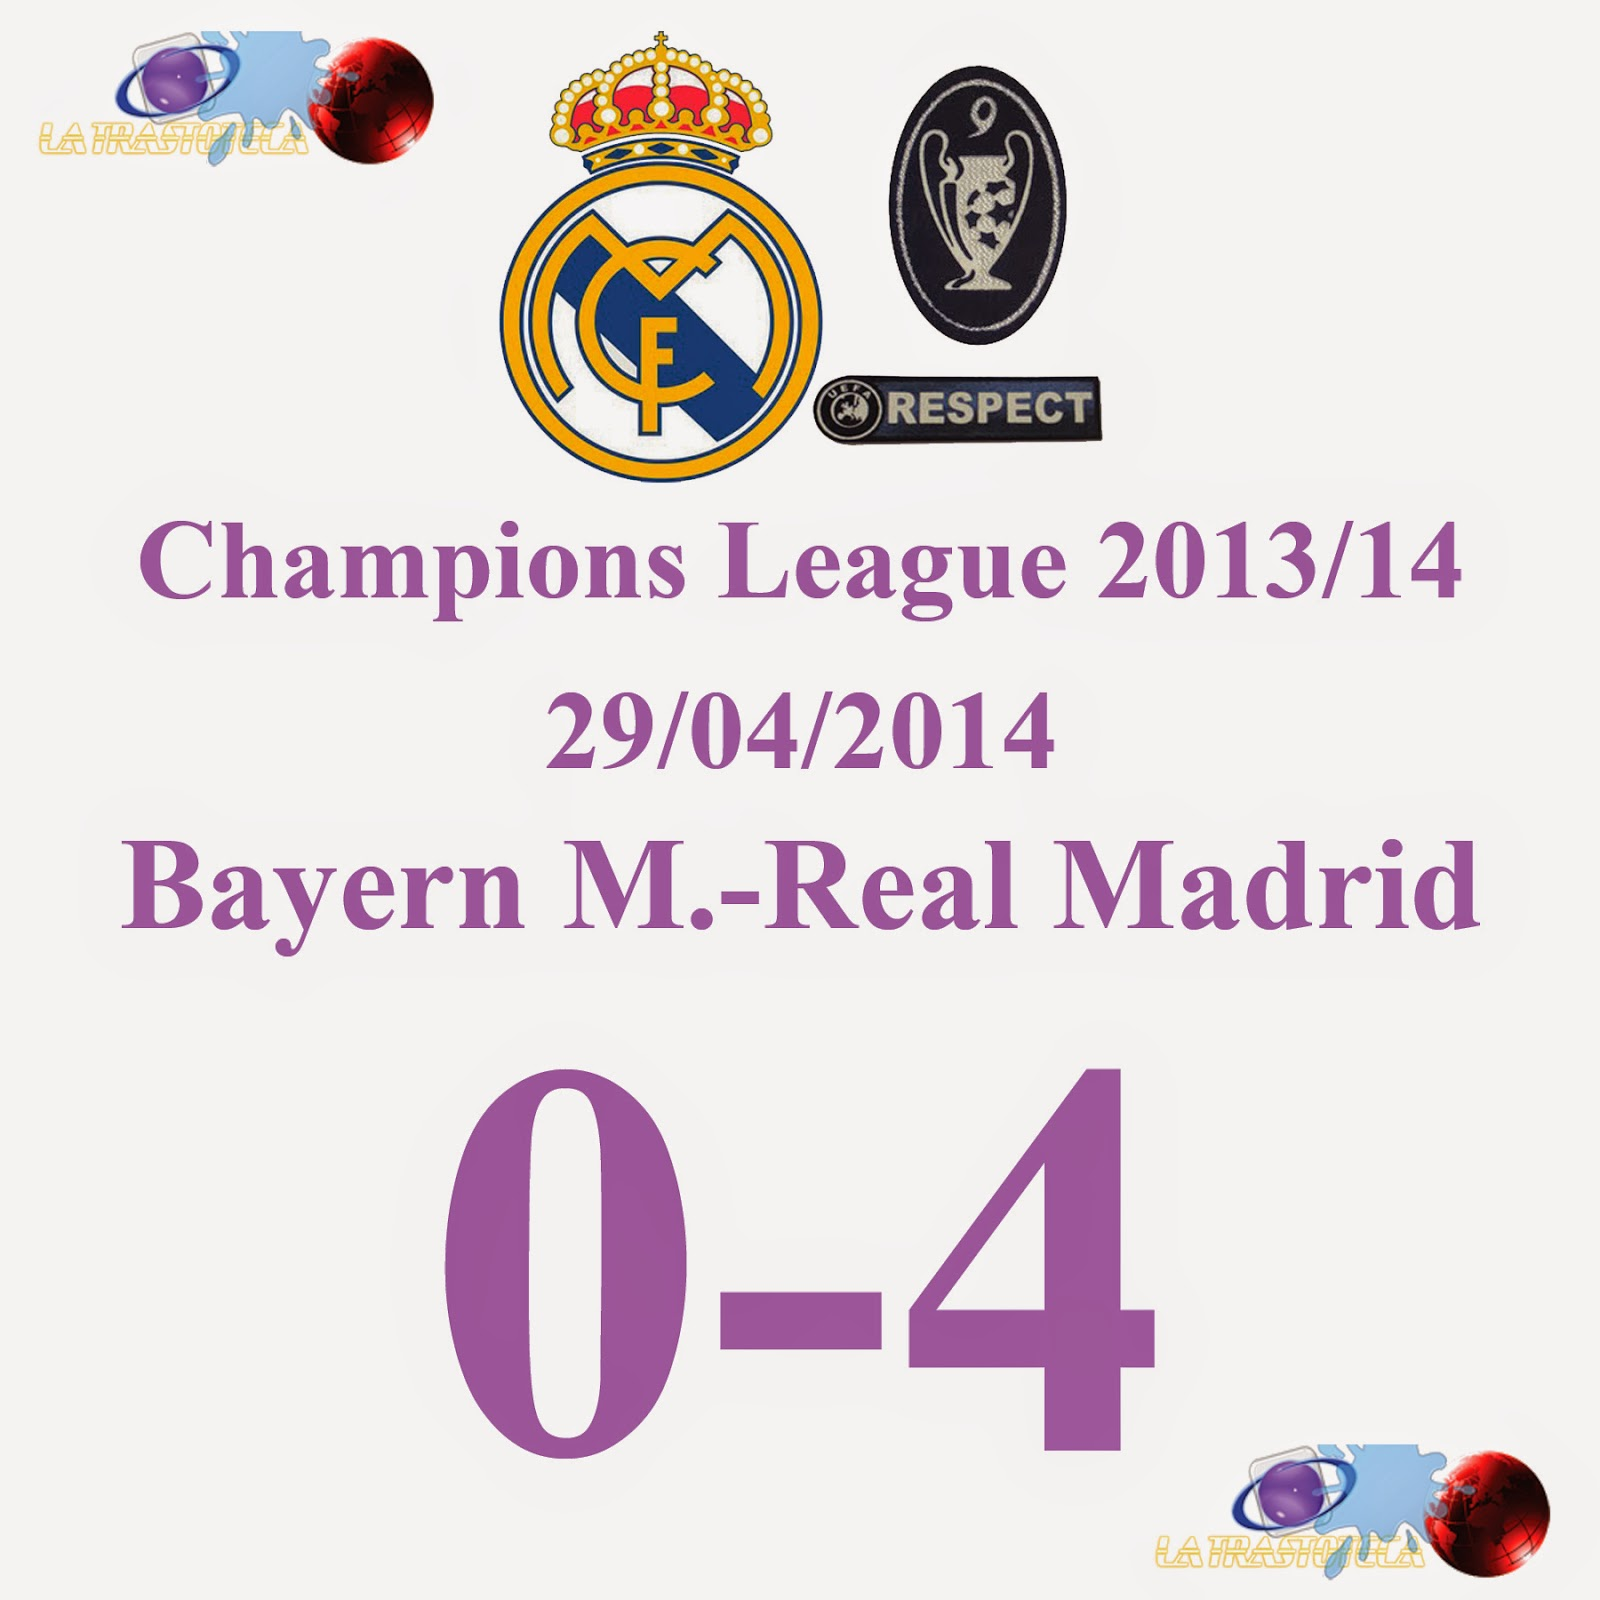 Bayern 0 - Real Madrid 4 - 29/04/2014 Real Madrid Clasificado para la Final de Champions League. Guardiola la jugará en la PlayStation. NUEVO RÉCORD DE CRISTIANO RONALDO.